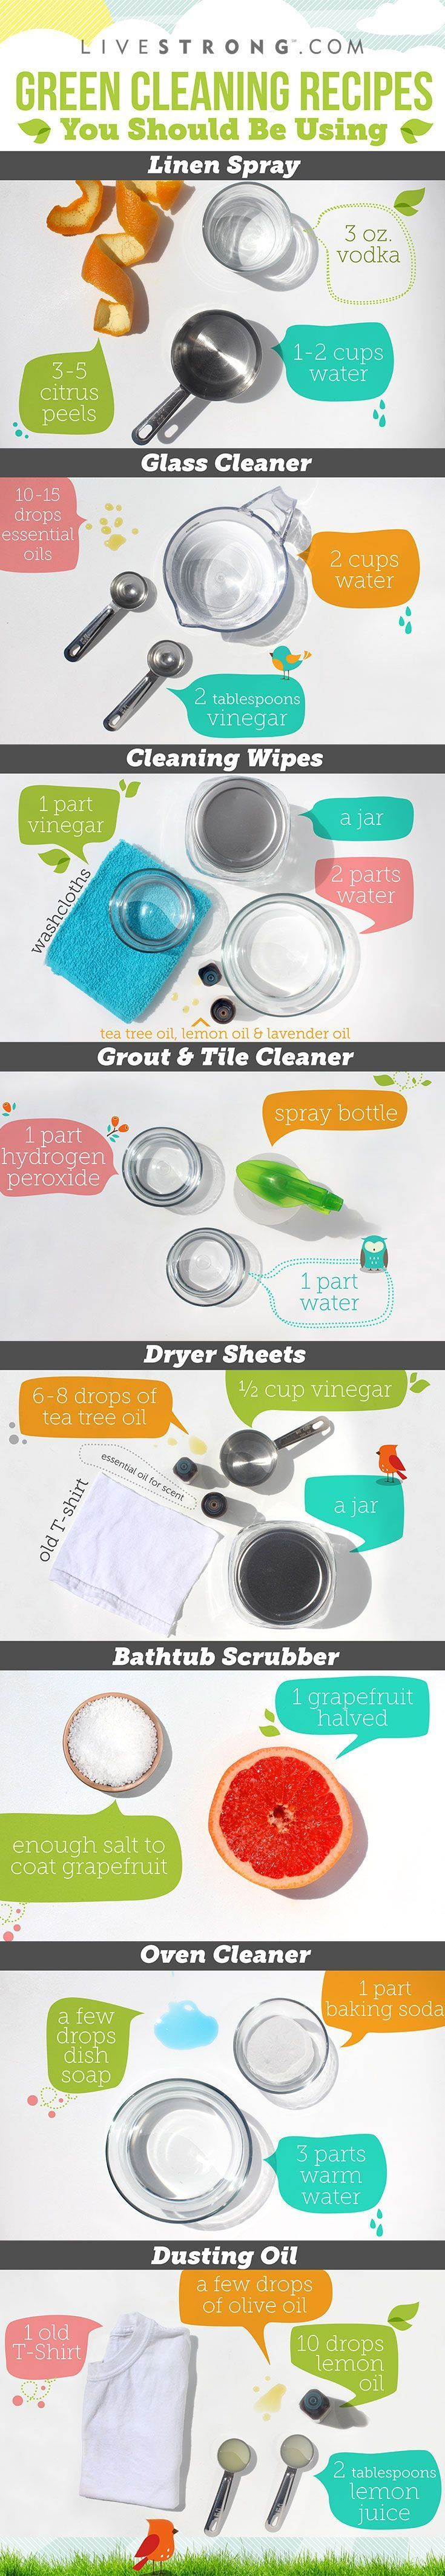 8 Guilt-Free Cleaning Products to Make at Home http://www.livestrong.com/slideshow/1011358-8-guiltfree-cleaning-products-make-home/